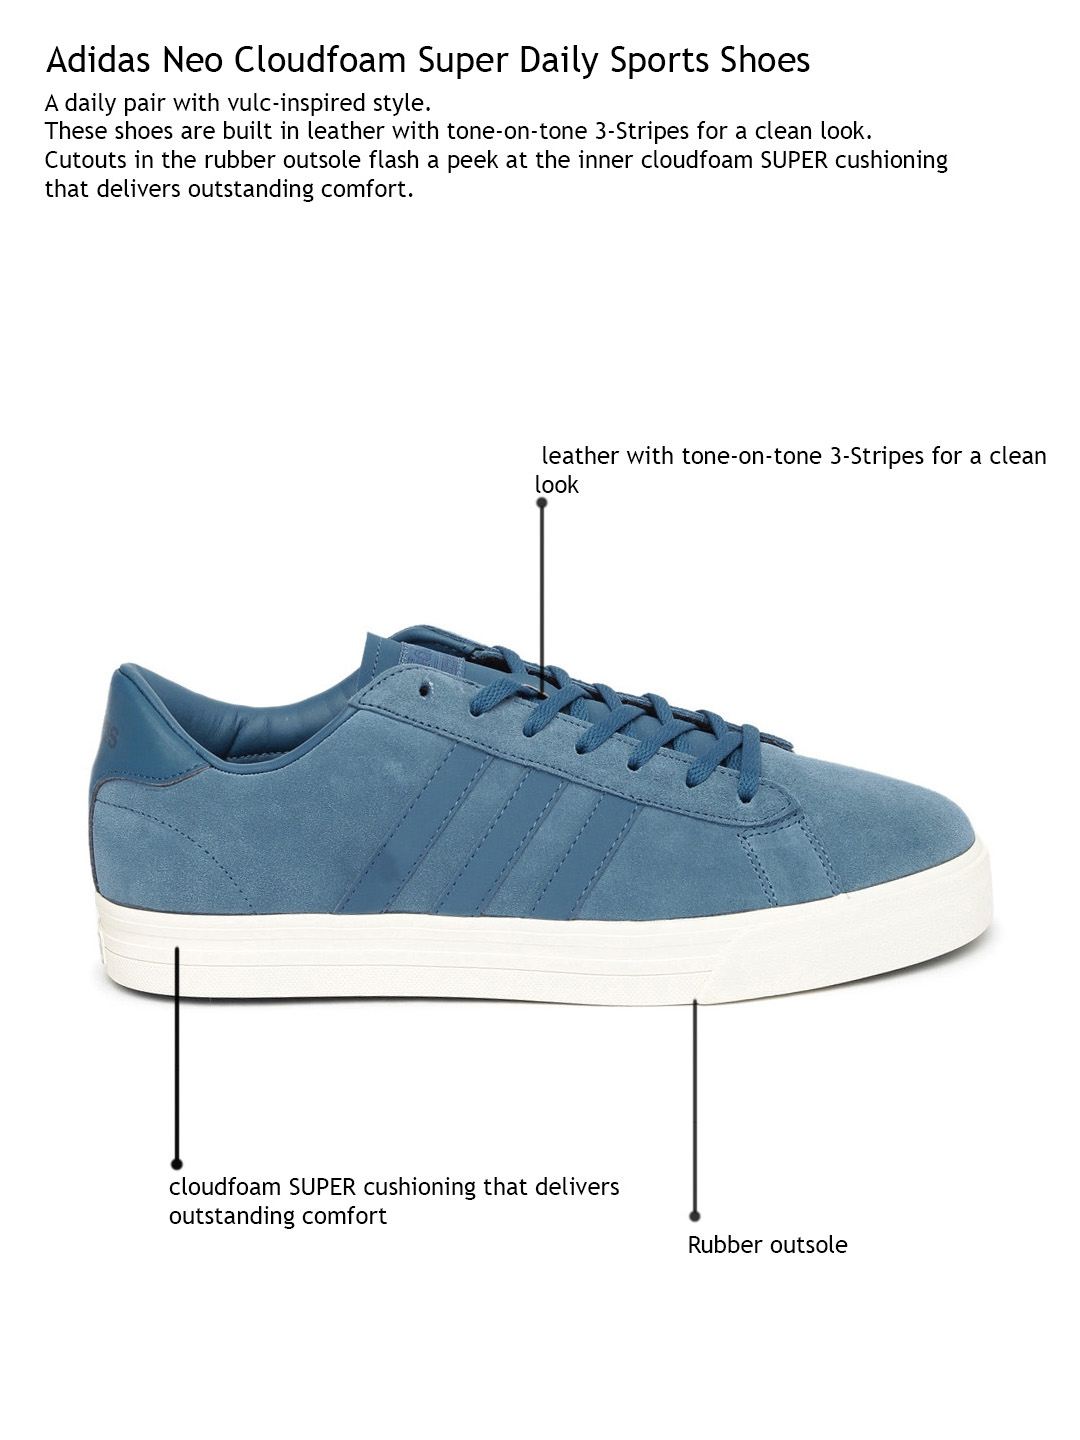 6eeadf1d2bff8 Buy ADIDAS NEO Men Blue Solid Suede Leather Cloudfoam Super Daily ...